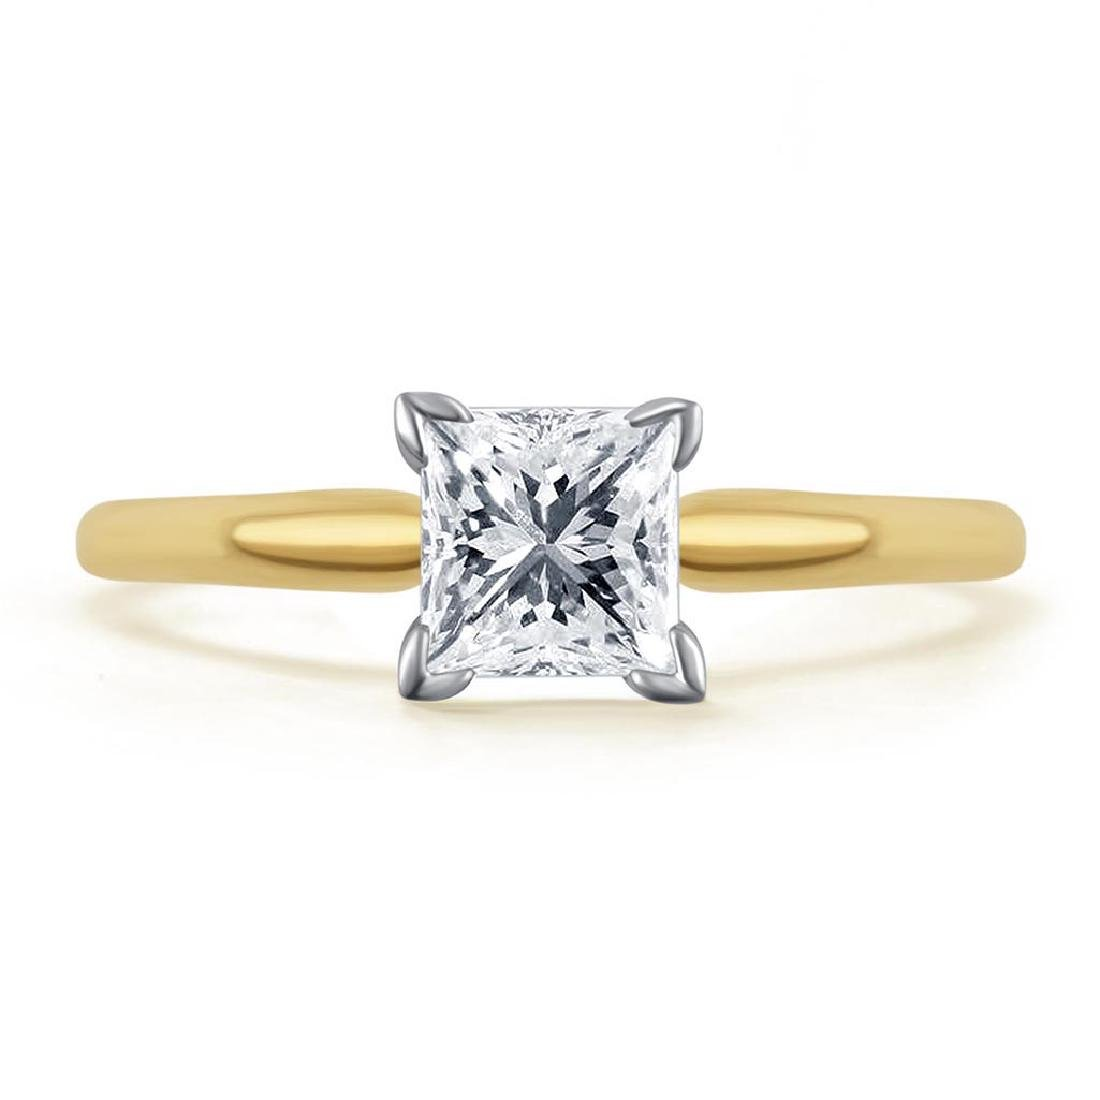 CERTIFIED 1 CTW PRINCESS F/SI2 SOLITAIRE RING IN 14K YE